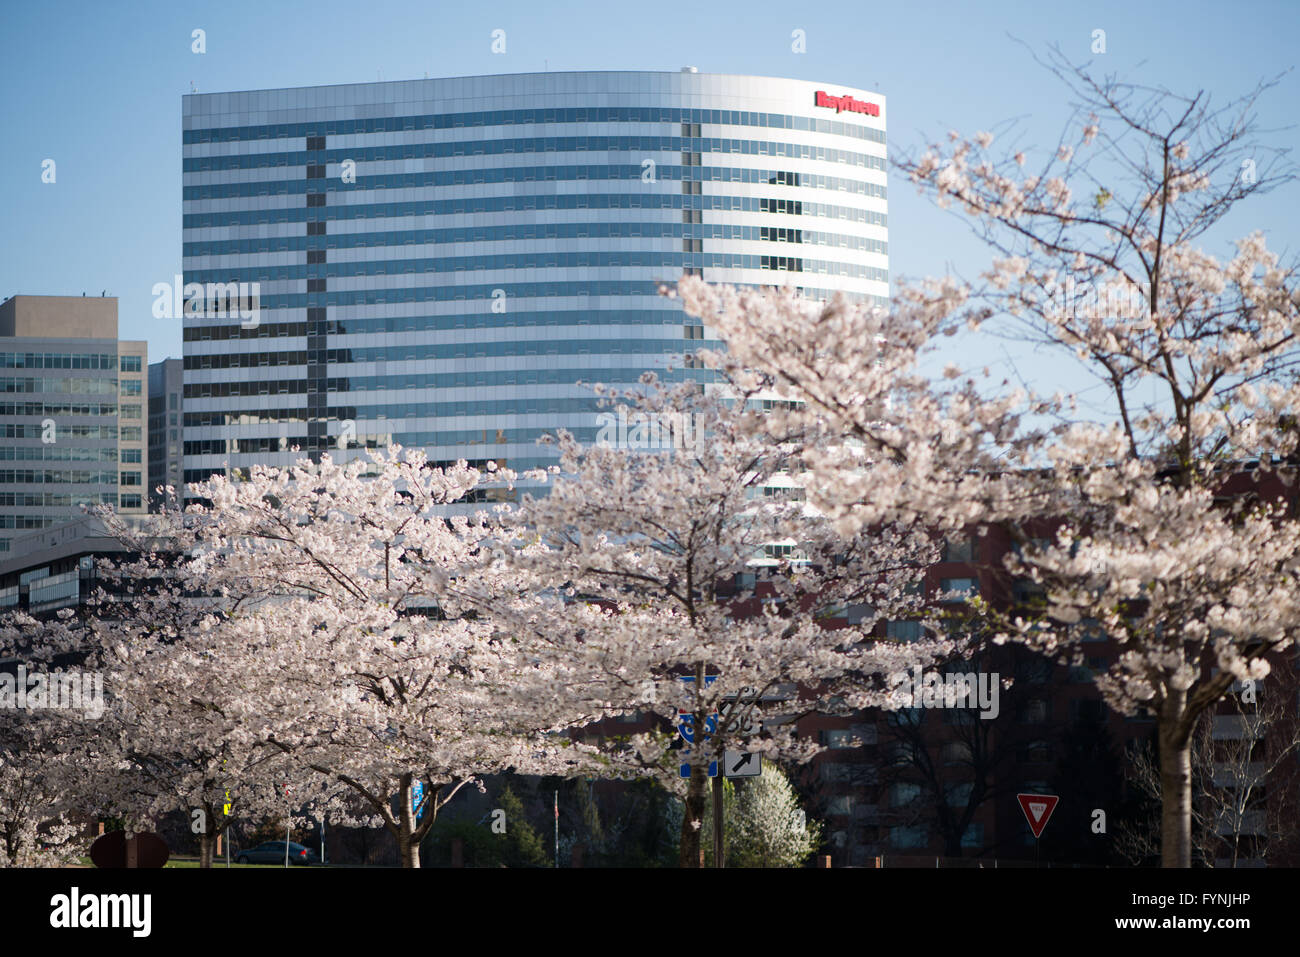 The prominent Raytheon building in Rosslyn, Arlington, Virginia, just across the Potomac River from Washington DC. - Stock Image